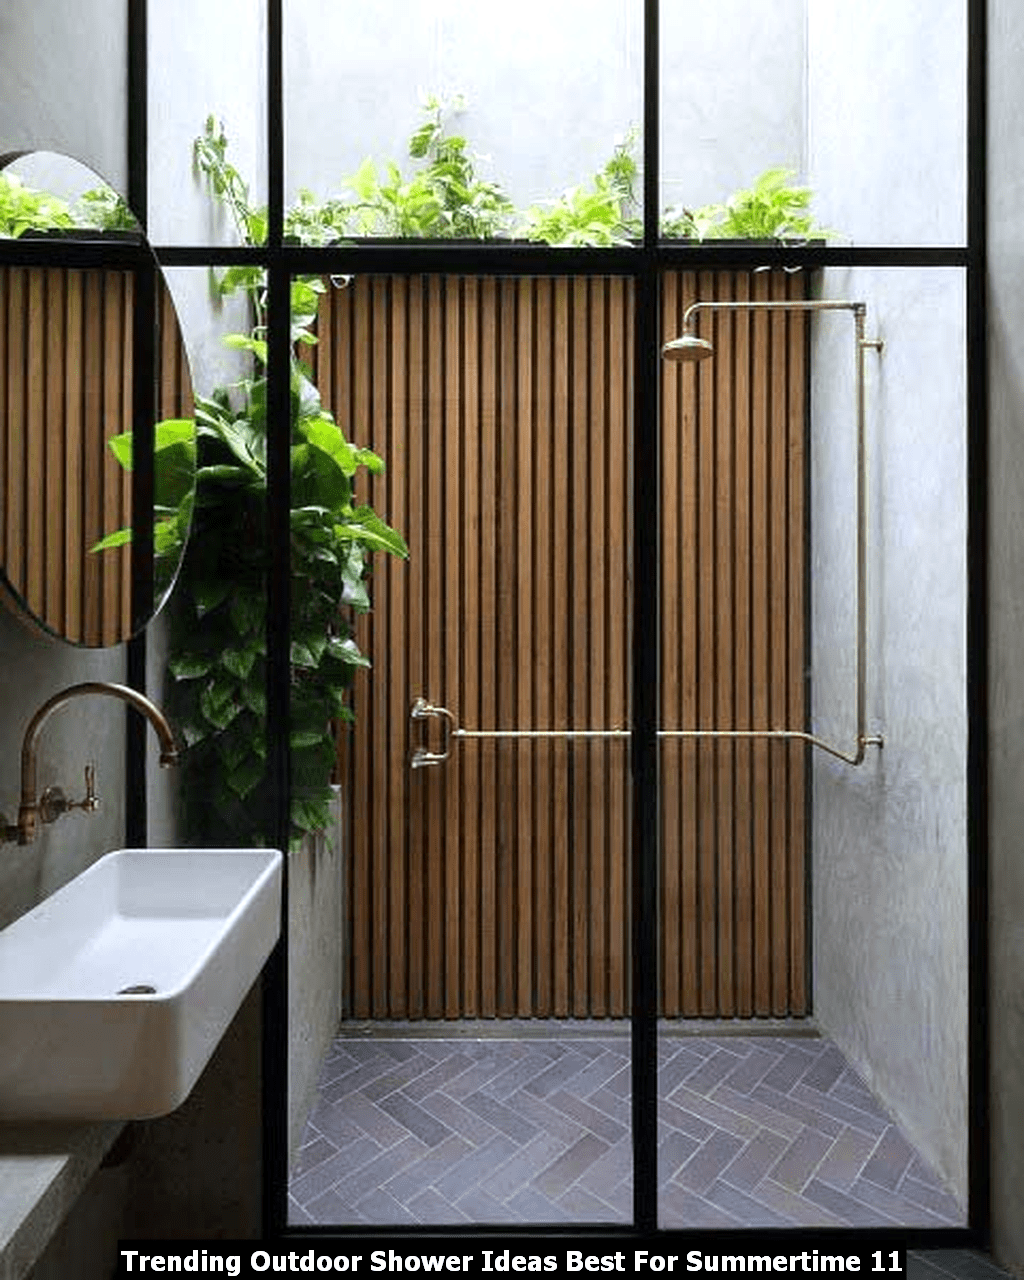 Trending Outdoor Shower Ideas Best For Summertime 11